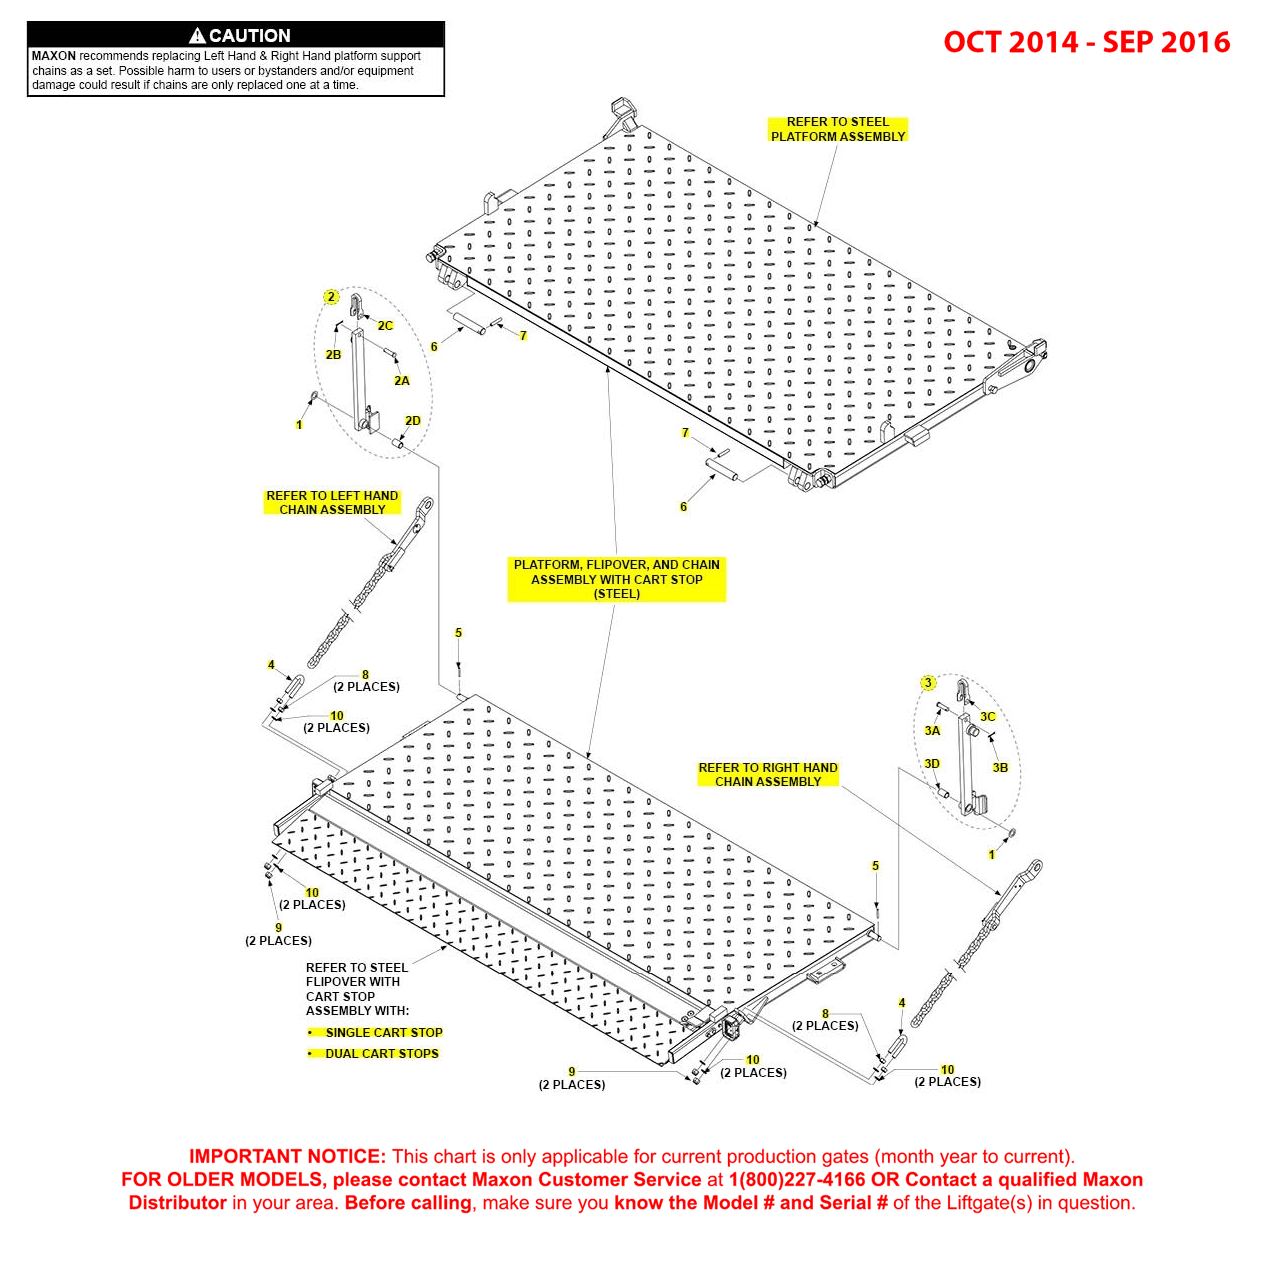 BMR (Oct 2014 - Sep 2016) Steel Platform Flipover And Chain Assembly With Cart Stop